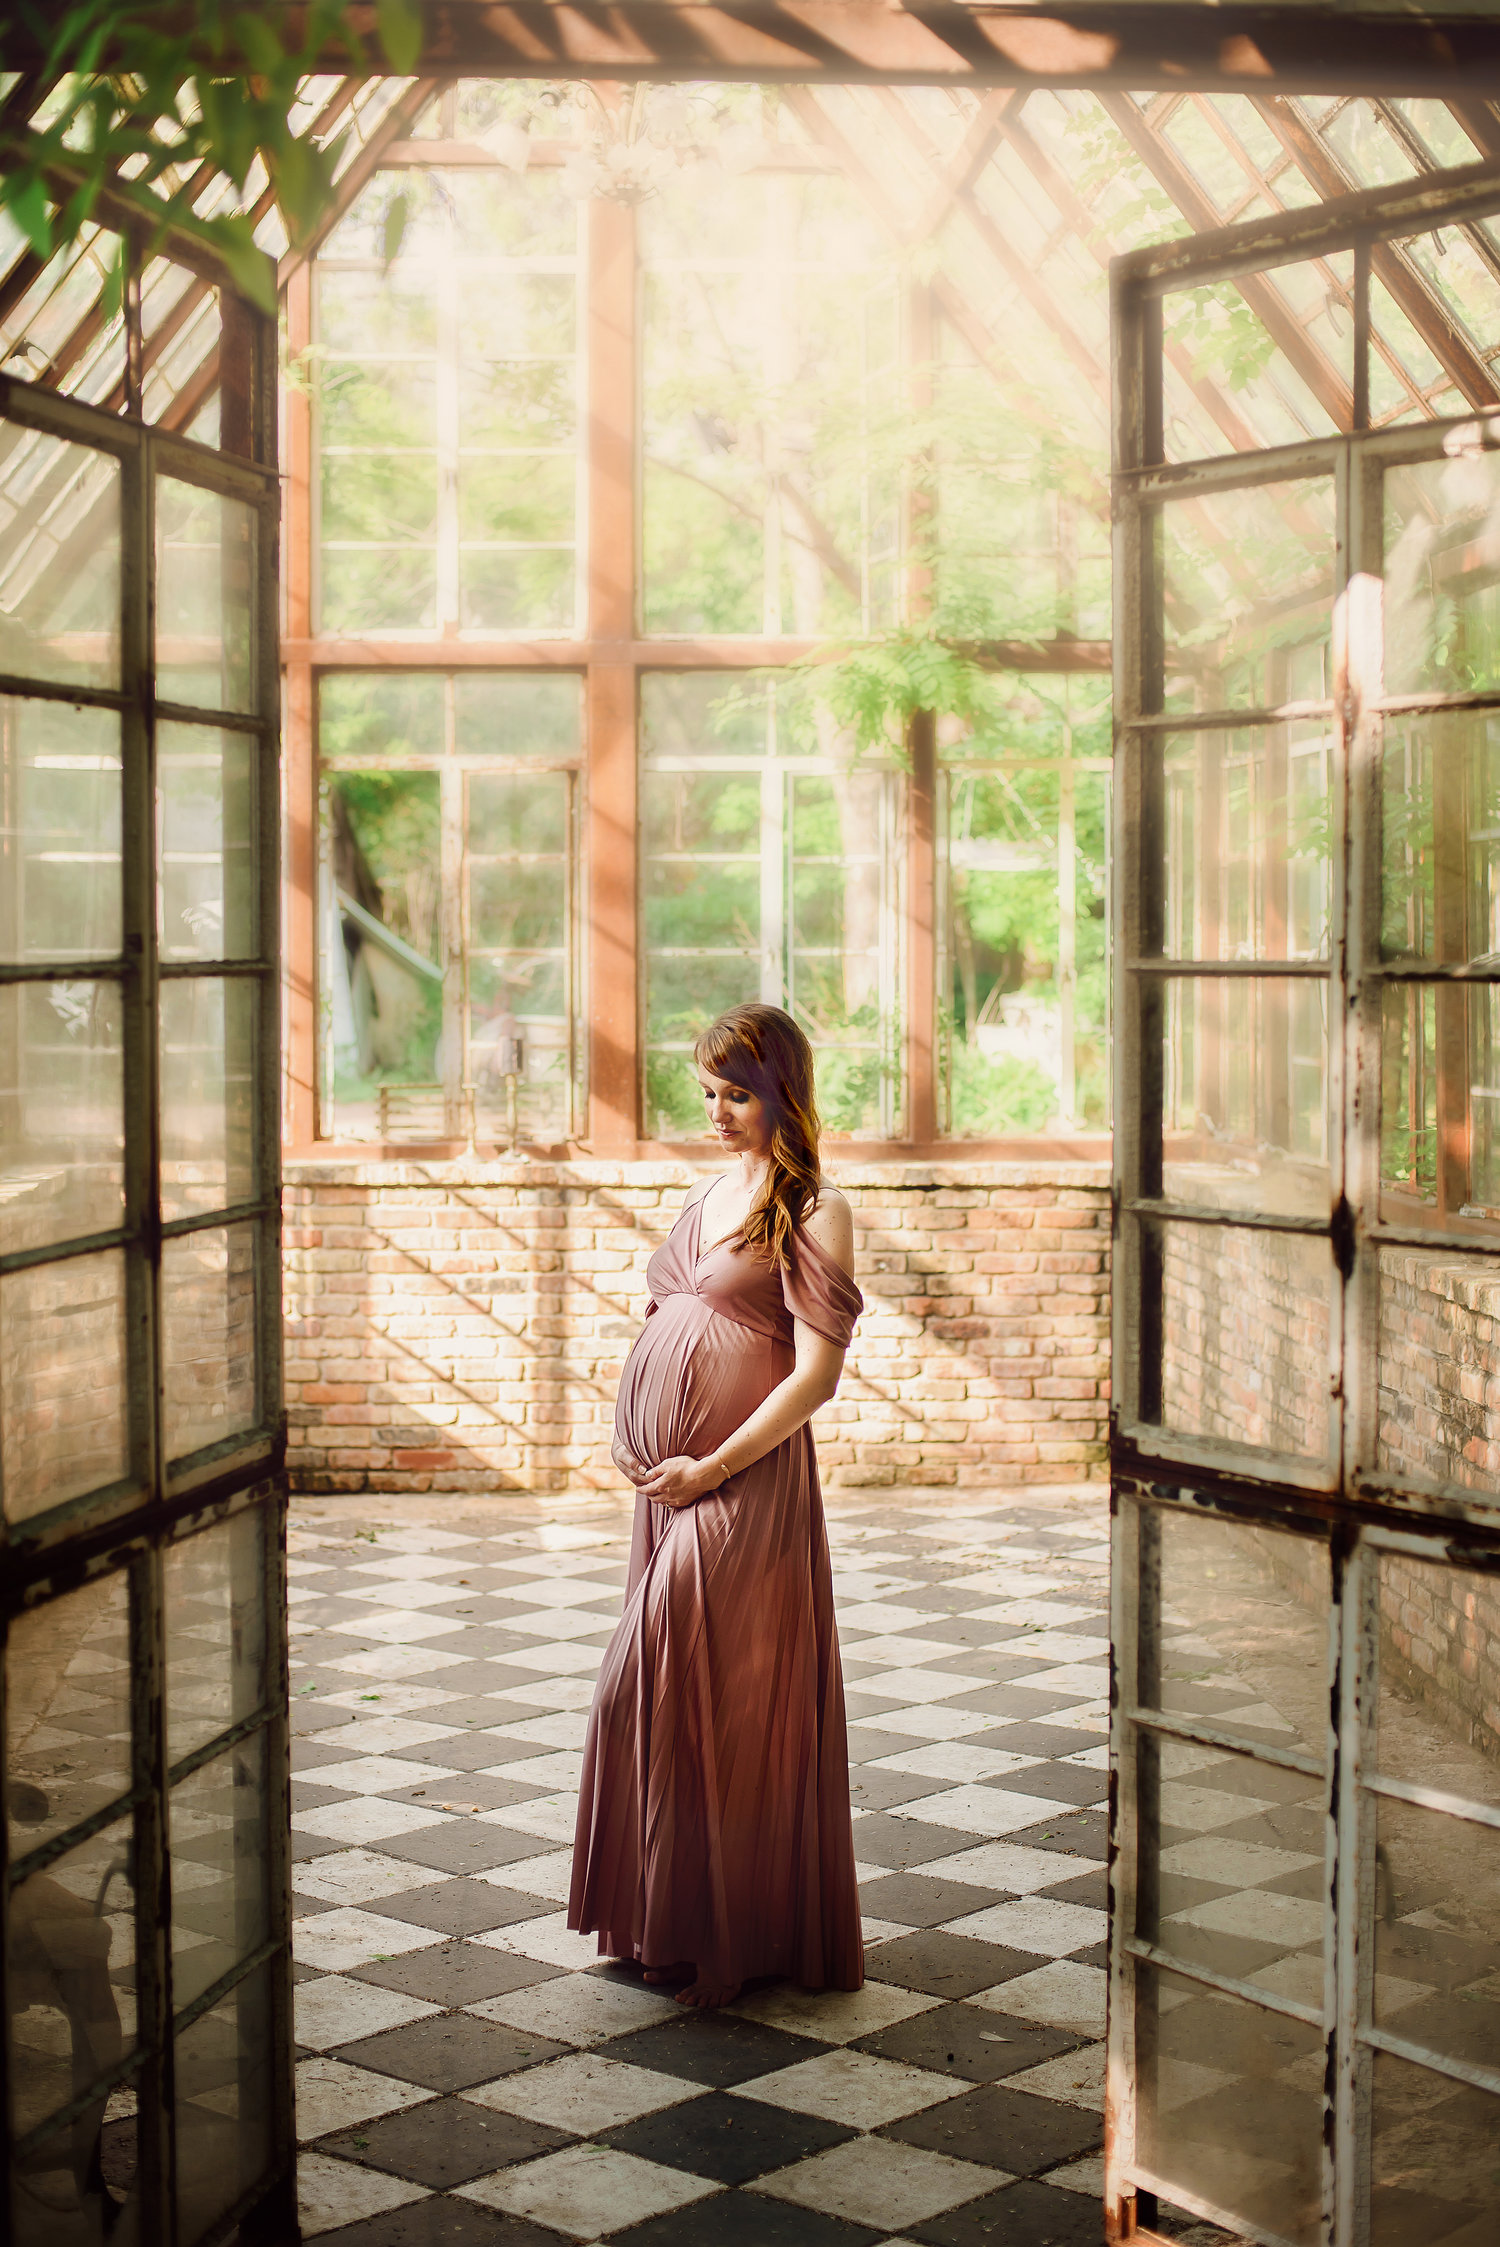 Erika Pearce Photography | Lifestyle Experience Session | Maternity PhotoShoot | Louisiana | Northshore | Nola | Mandeville | Covington